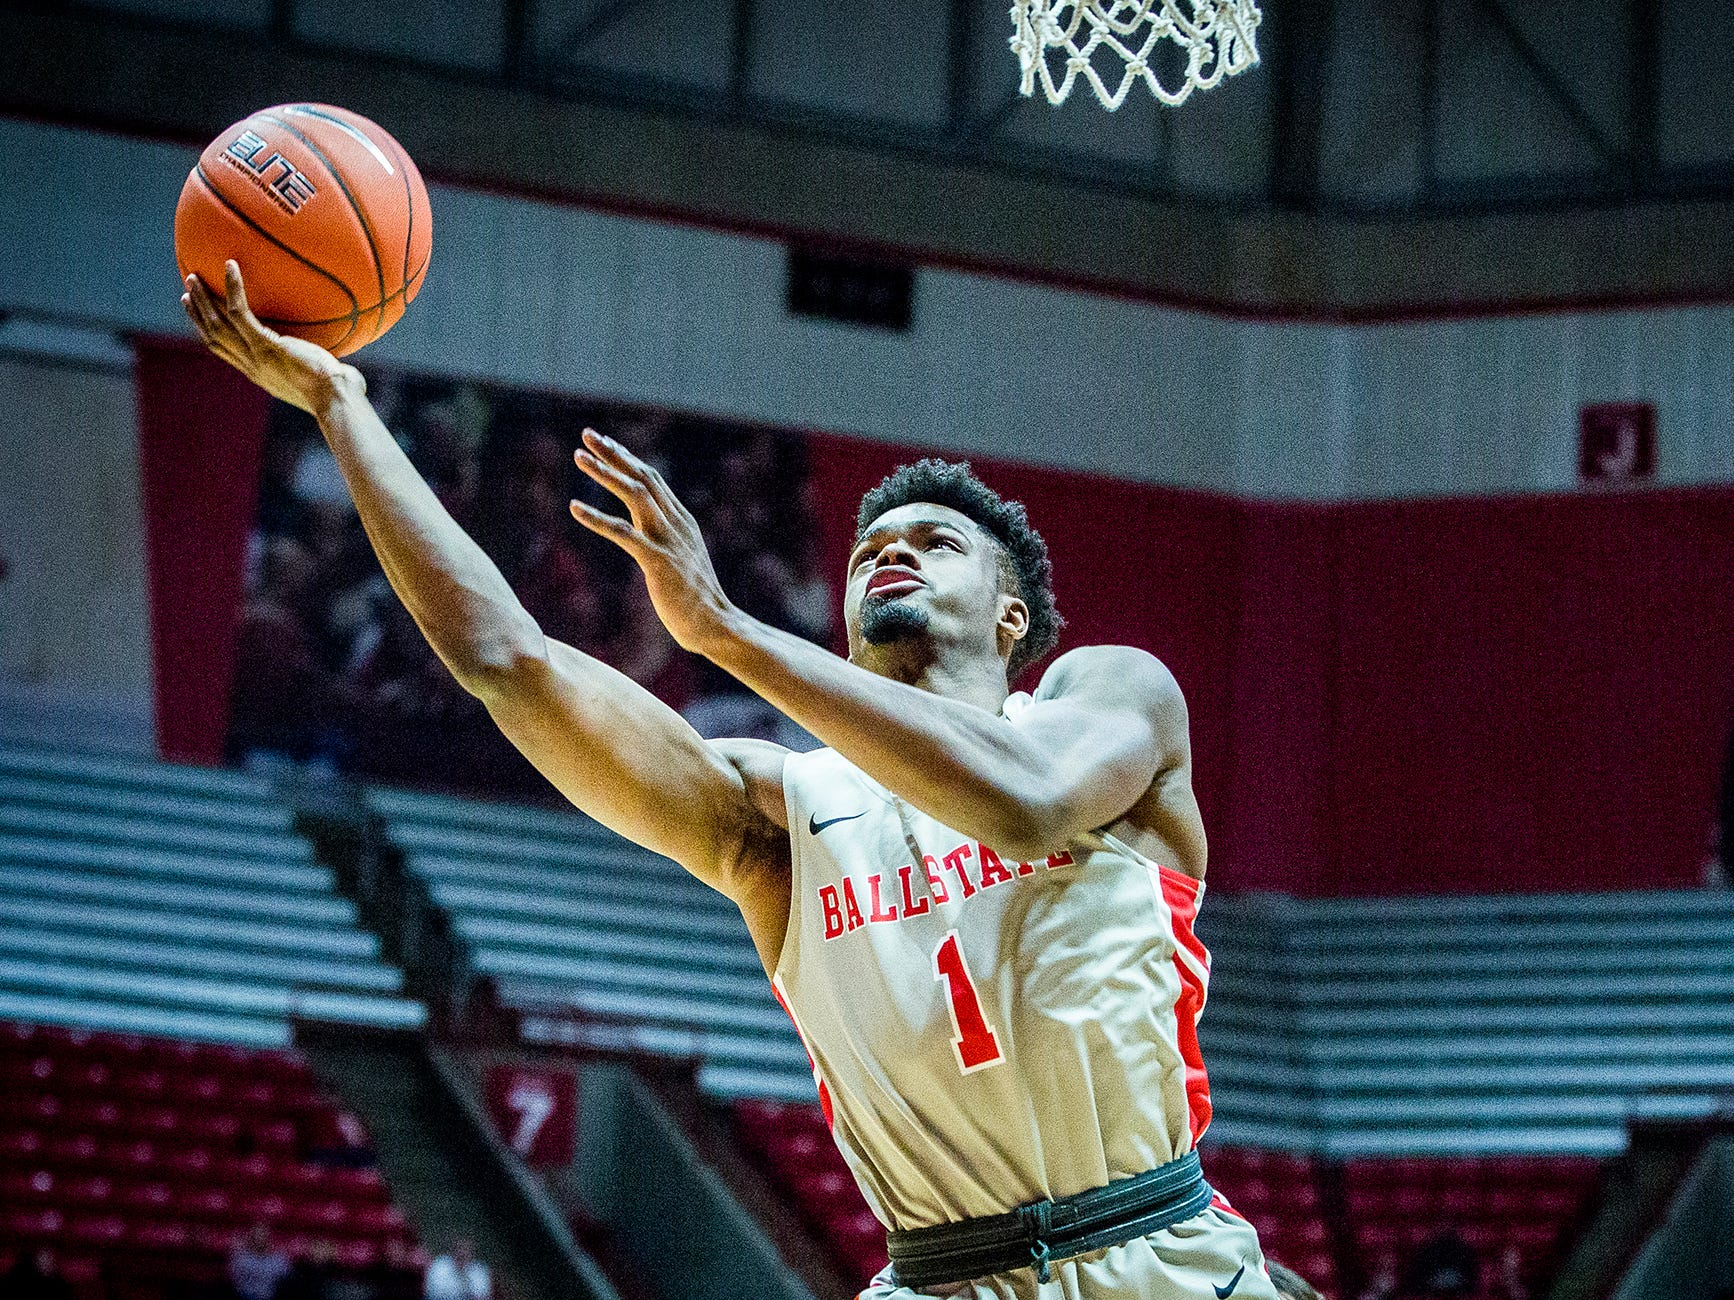 Ball State's KJ Walton drives to the basket against Tiffin during their game at Worthen Arena Tuesday, Nov. 27, 2018.